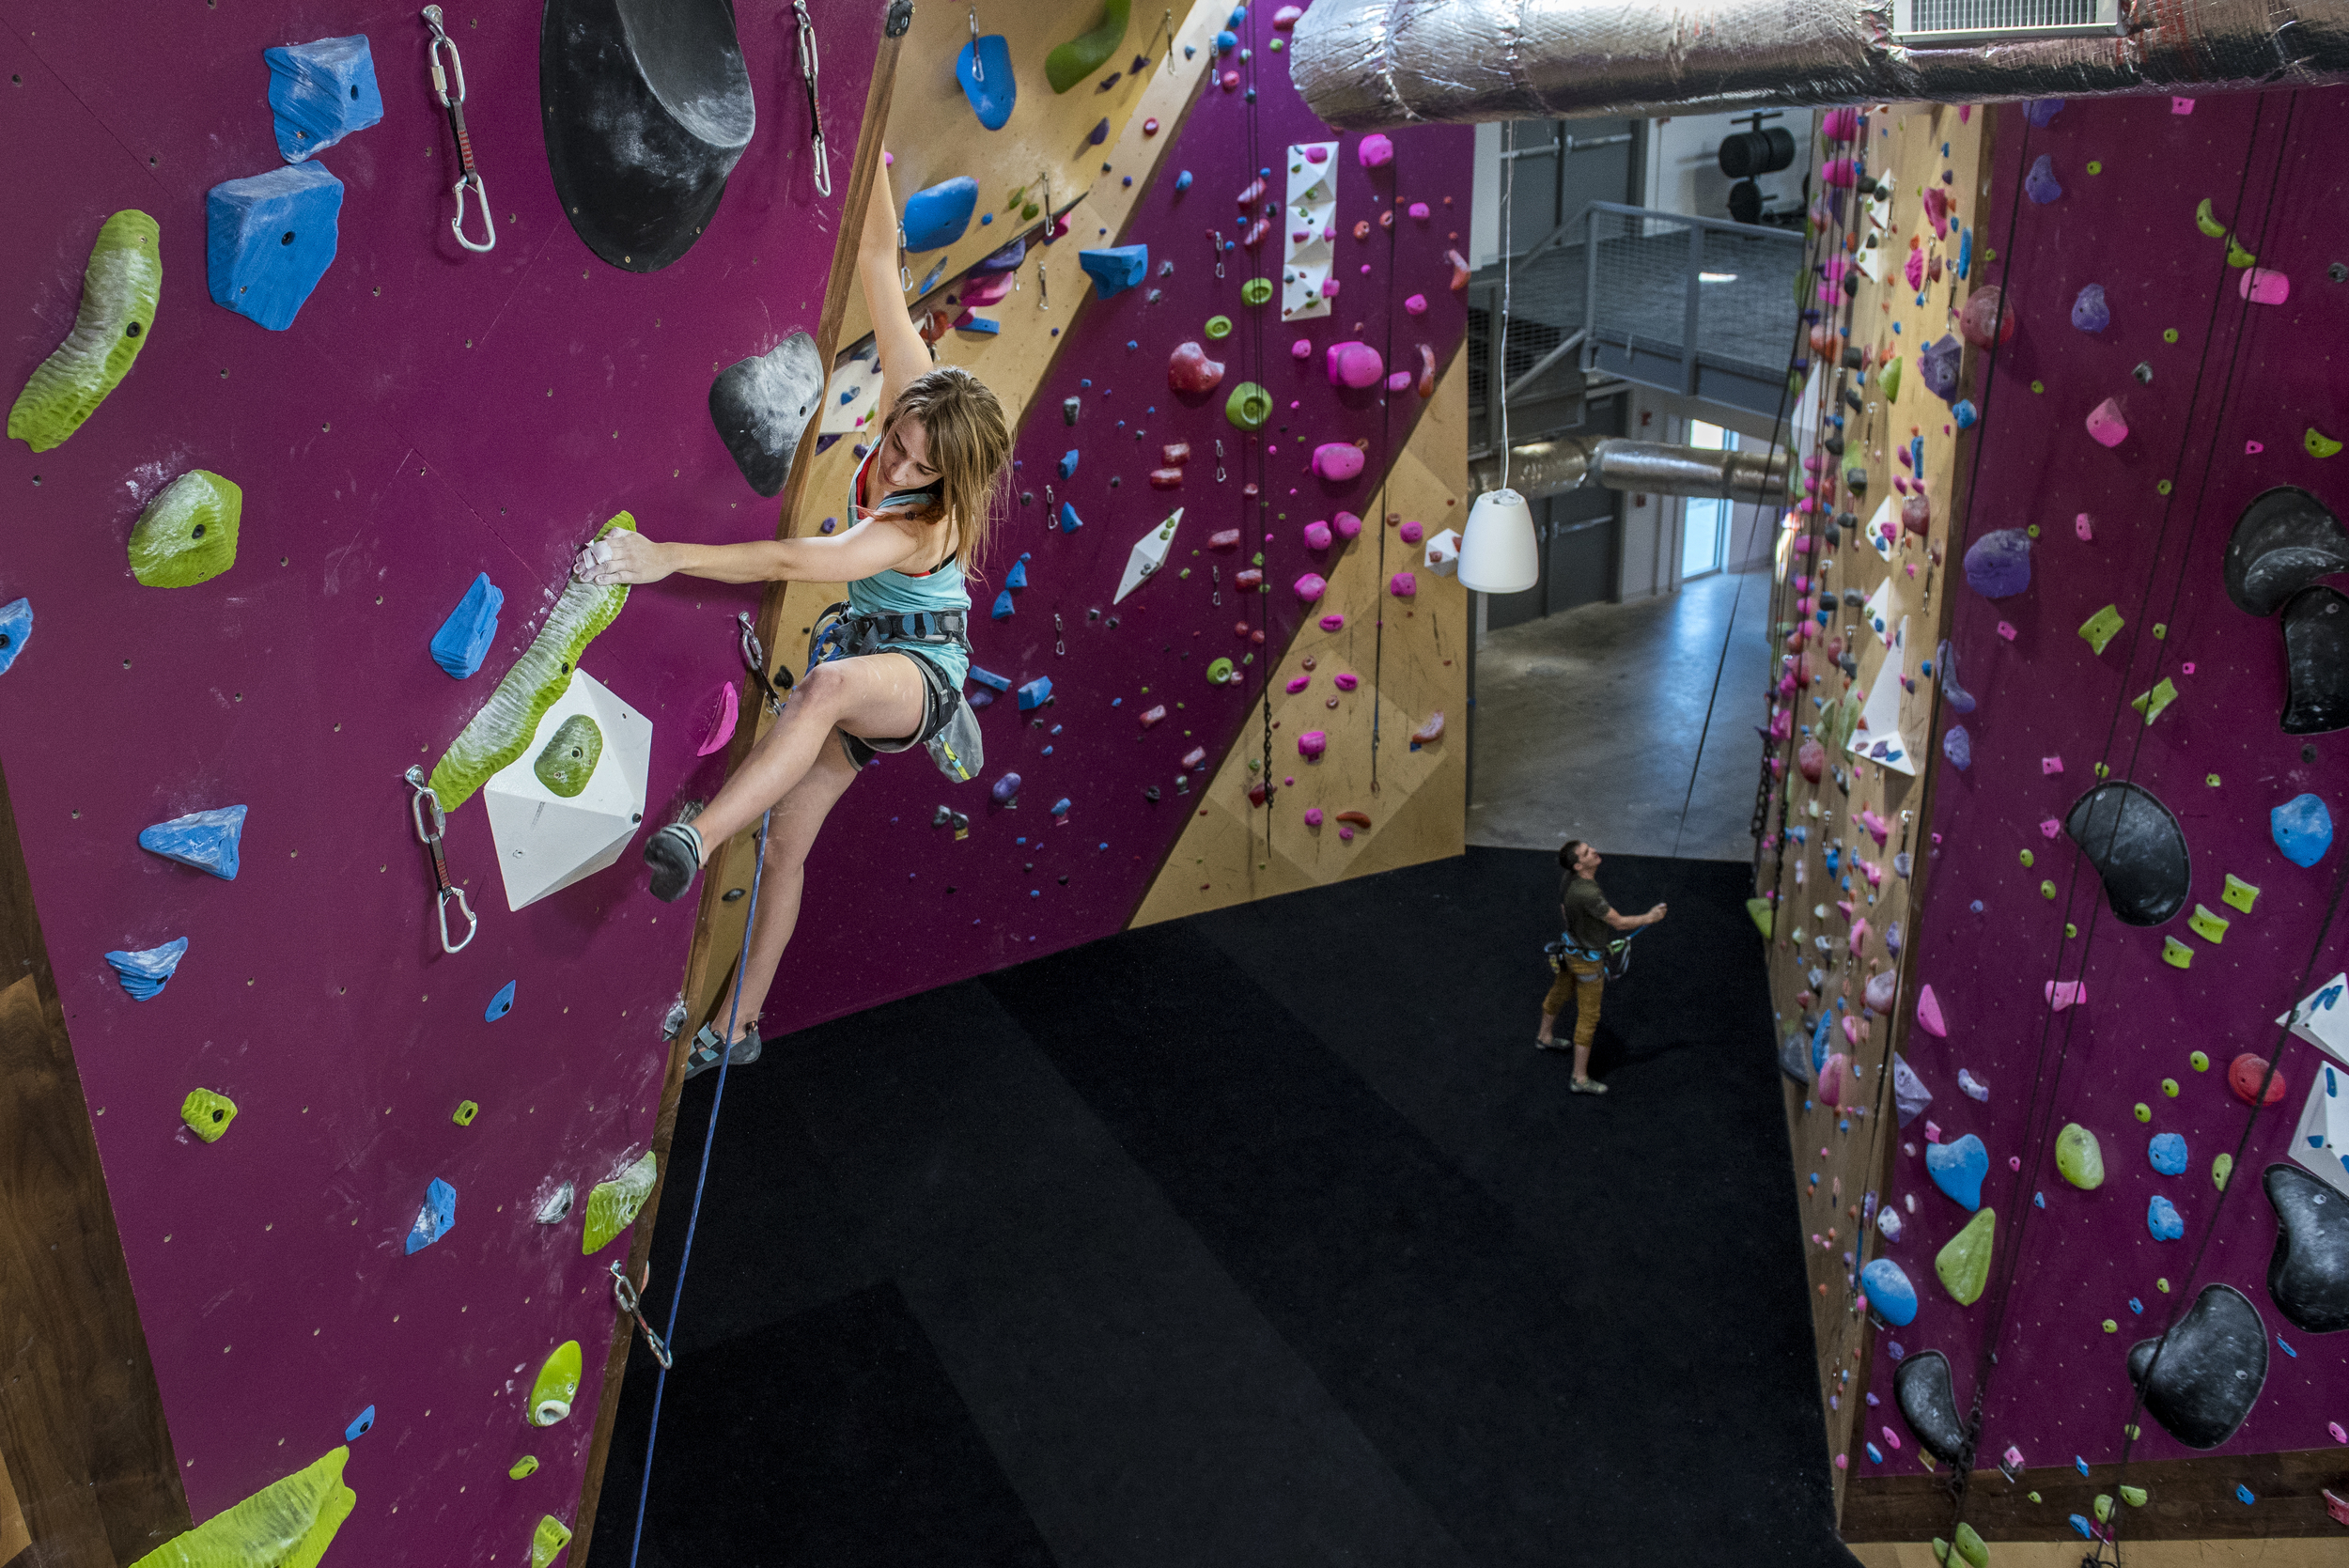 Our rope climbing area has walls 30 feet high. It features 27 anchors, 21 of which can be set for lead anchors. Eighteen of these can be set as top-rope or auto-belay anchors. We have 5-6 auto-belays set-up at a time.